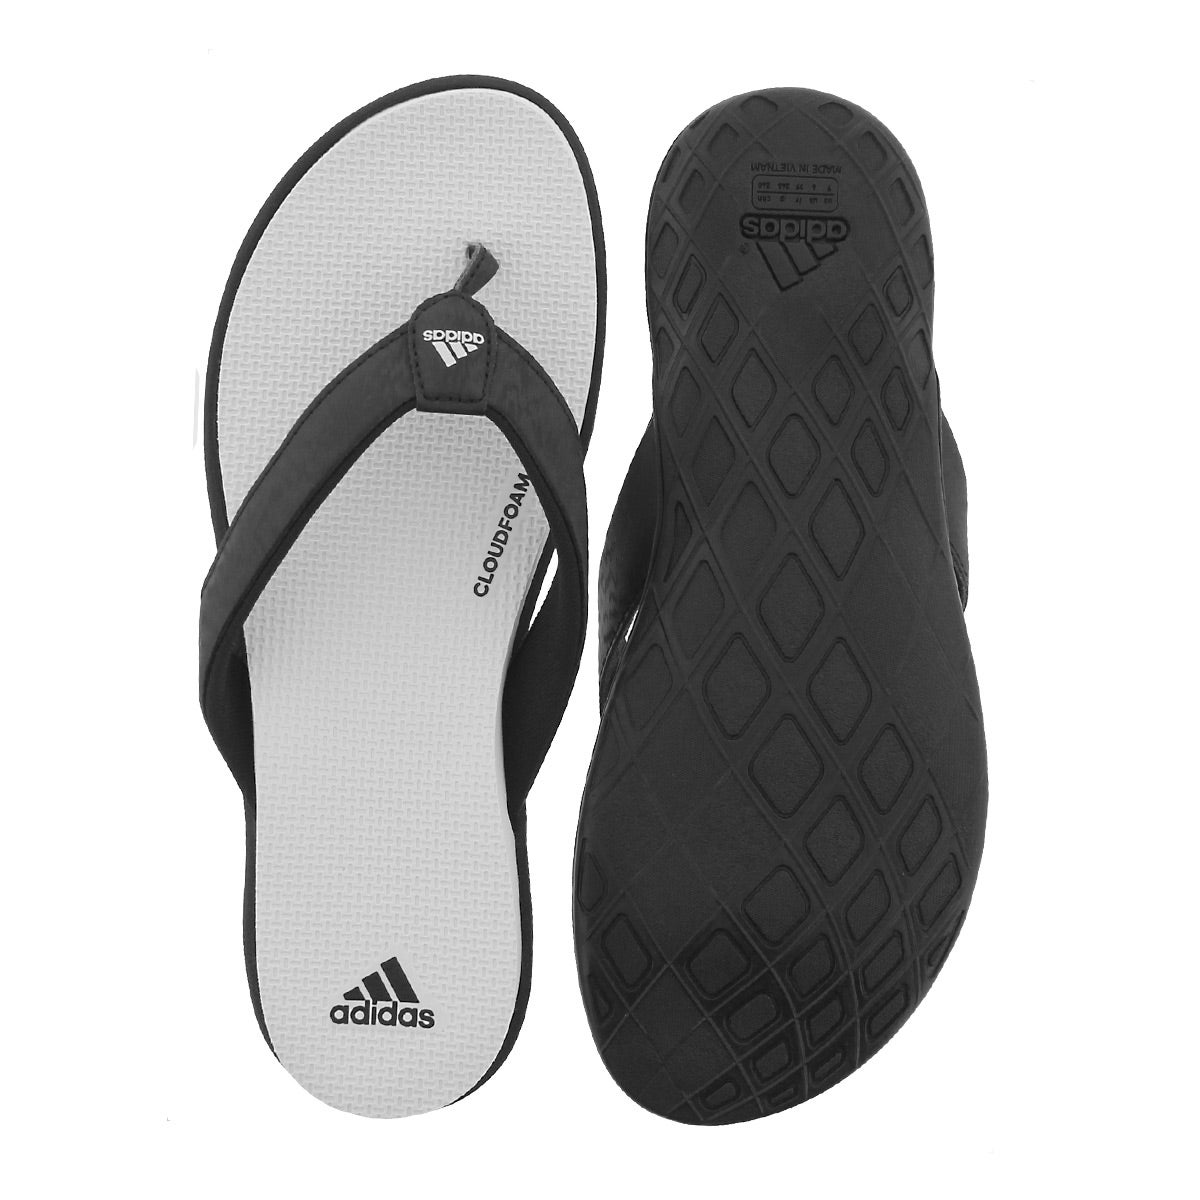 Lds Cloudfoam One Y blk/wht thong sandal